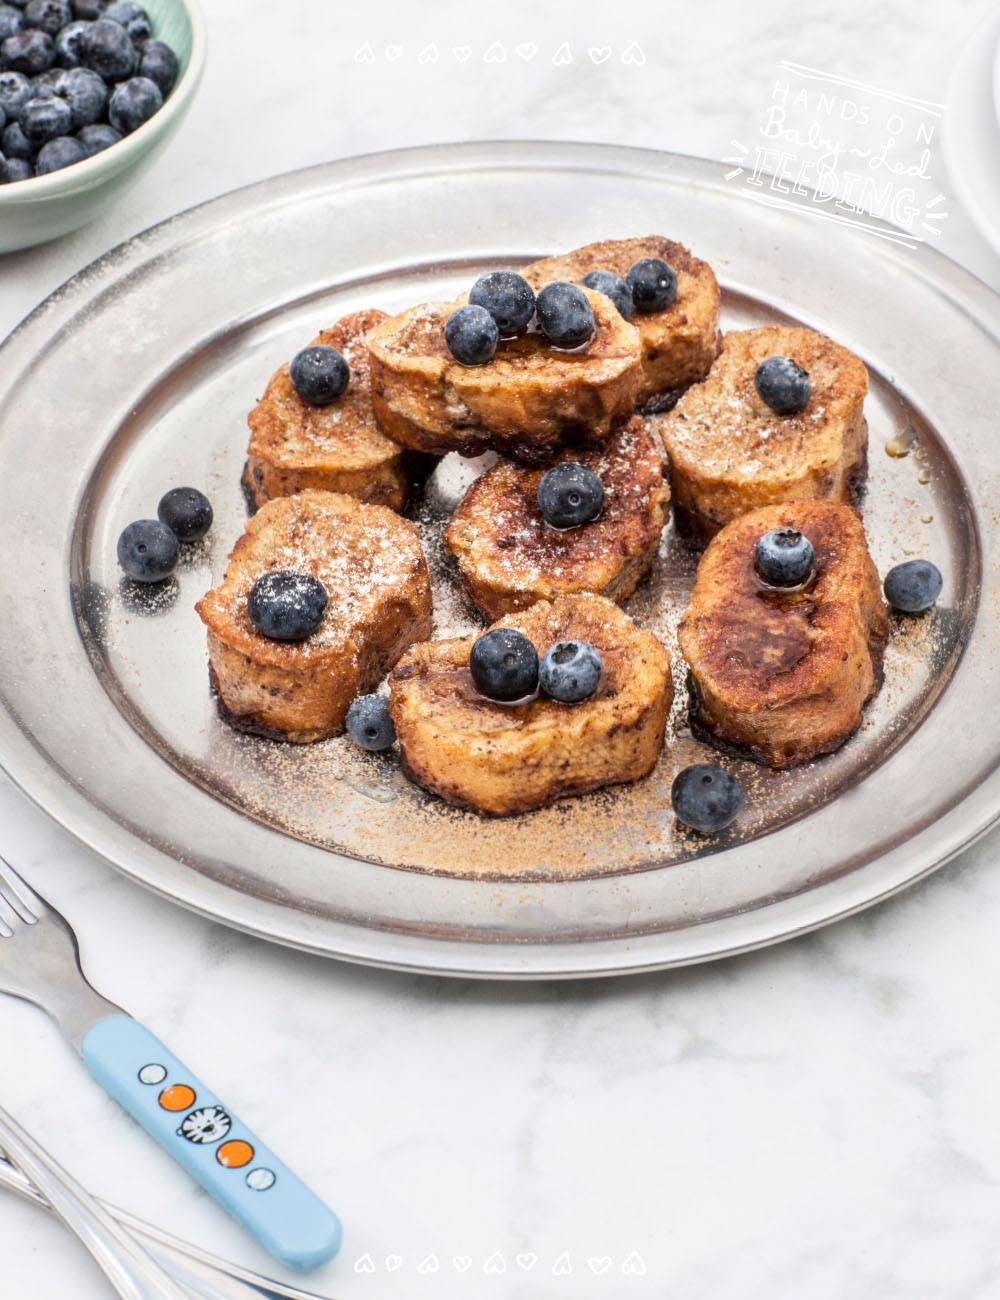 Baby-Led-Feeding-Healthy-Baby-French-Toast-with-Blueberries-Long-Image